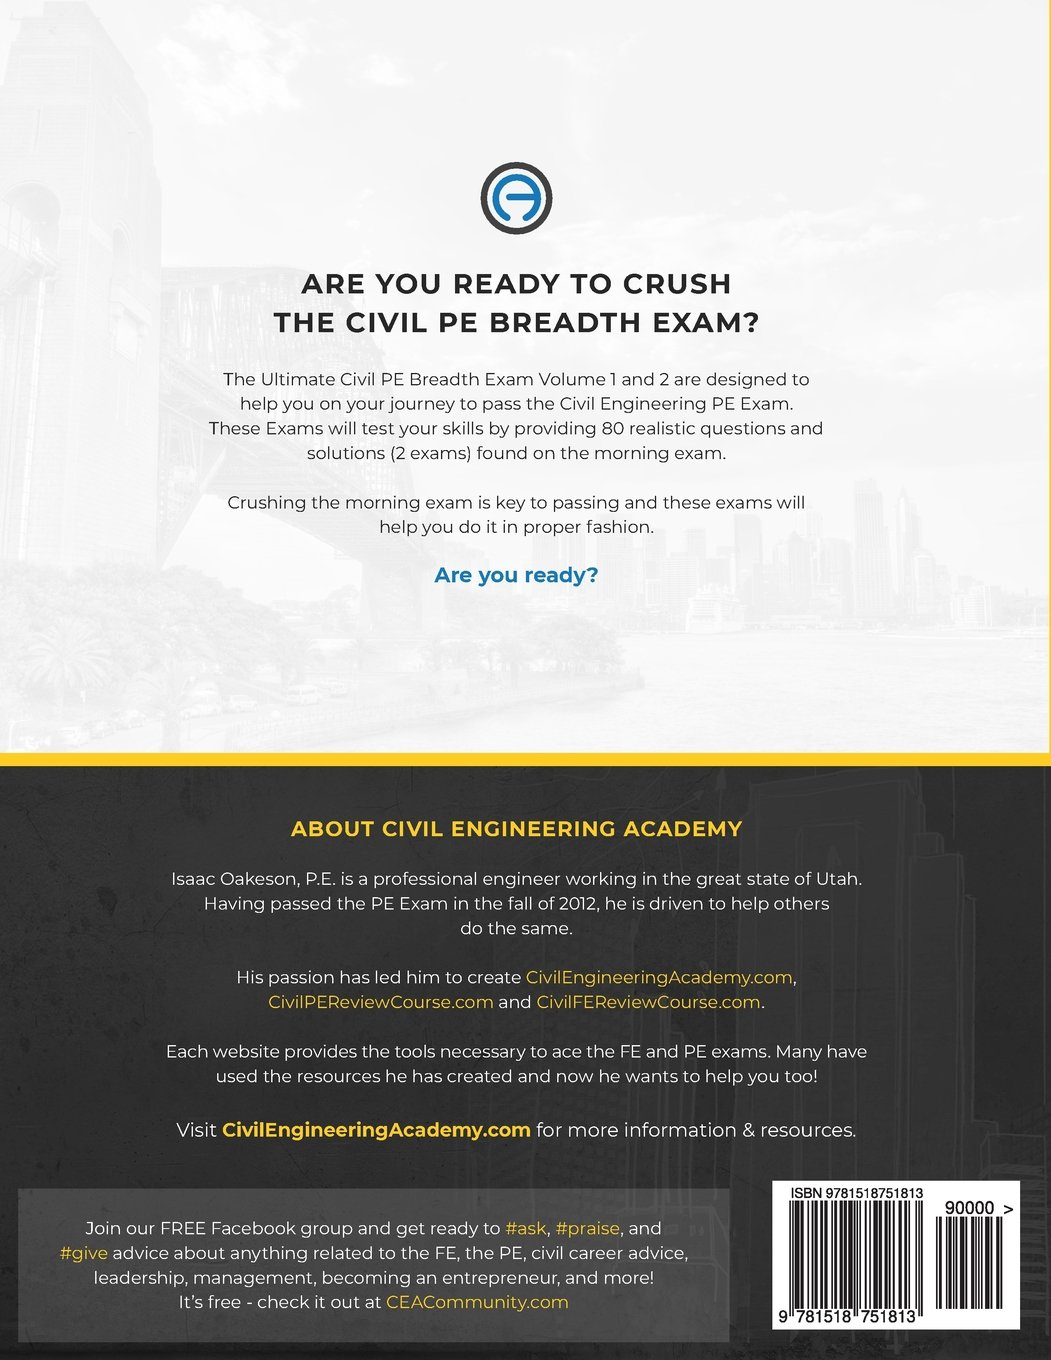 The Ultimate Civil PE Breadth Exam Volume 1 and 2: Helping you on your  journey to pass the PE!: Isaac Oakeson PE: 9781518751813: Amazon.com: Books